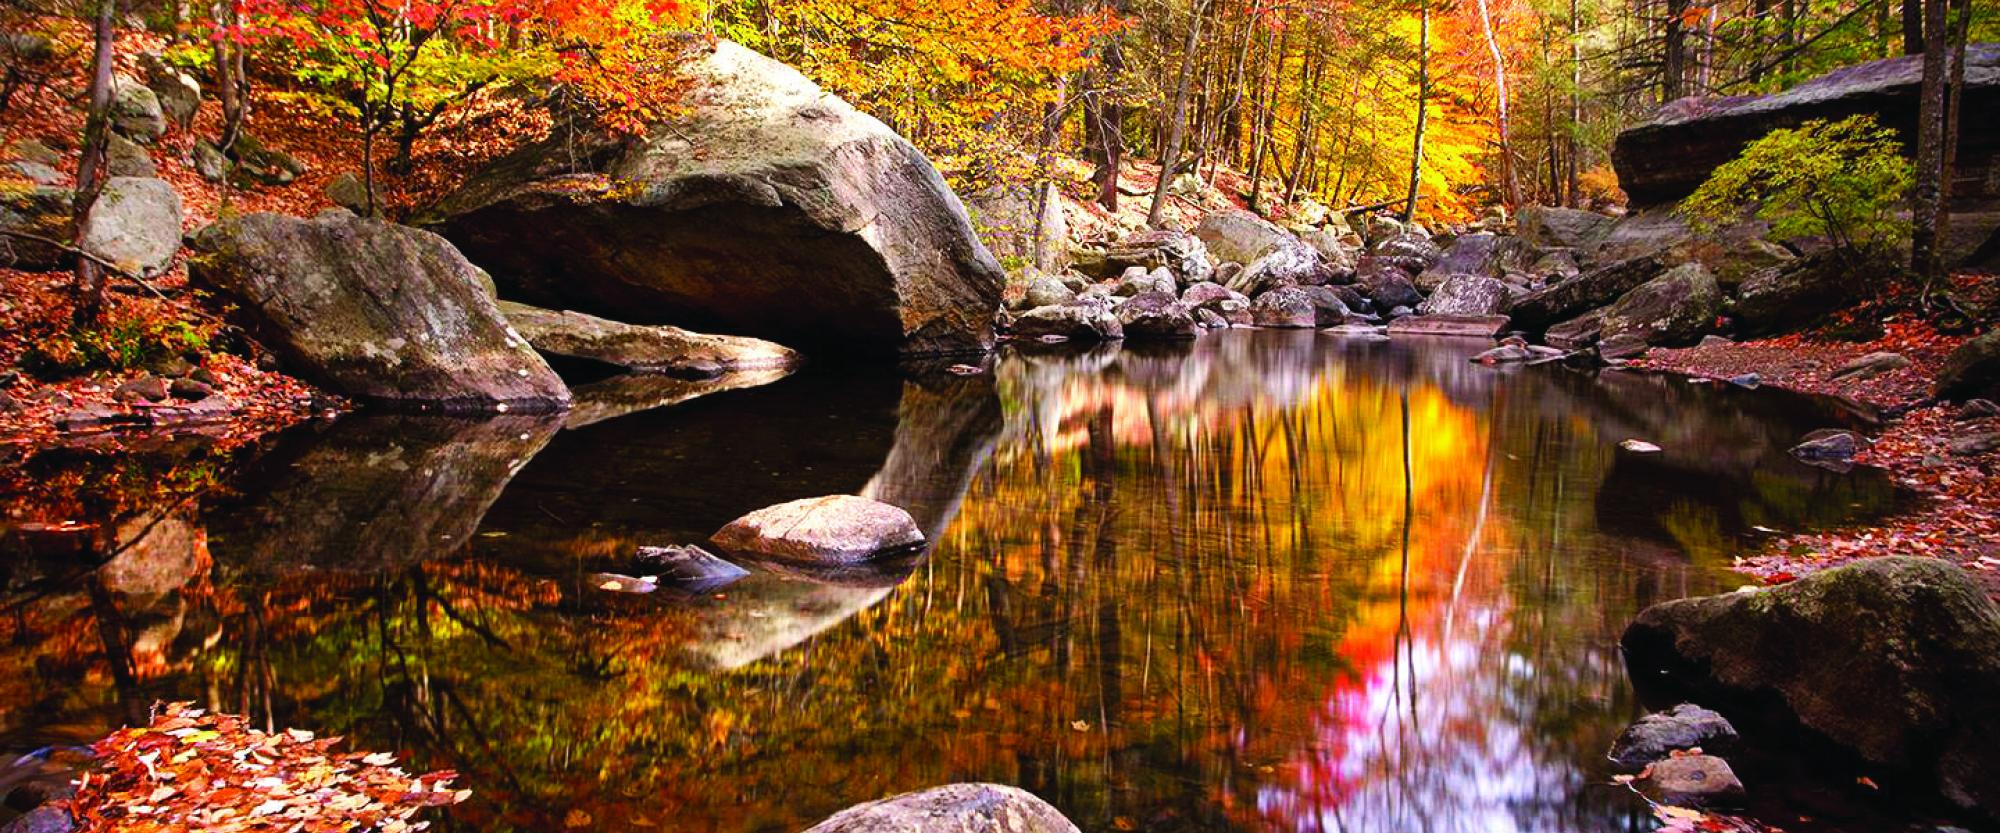 Harriman-Bear Mountain in the fall. Photo by Susan Magnano.